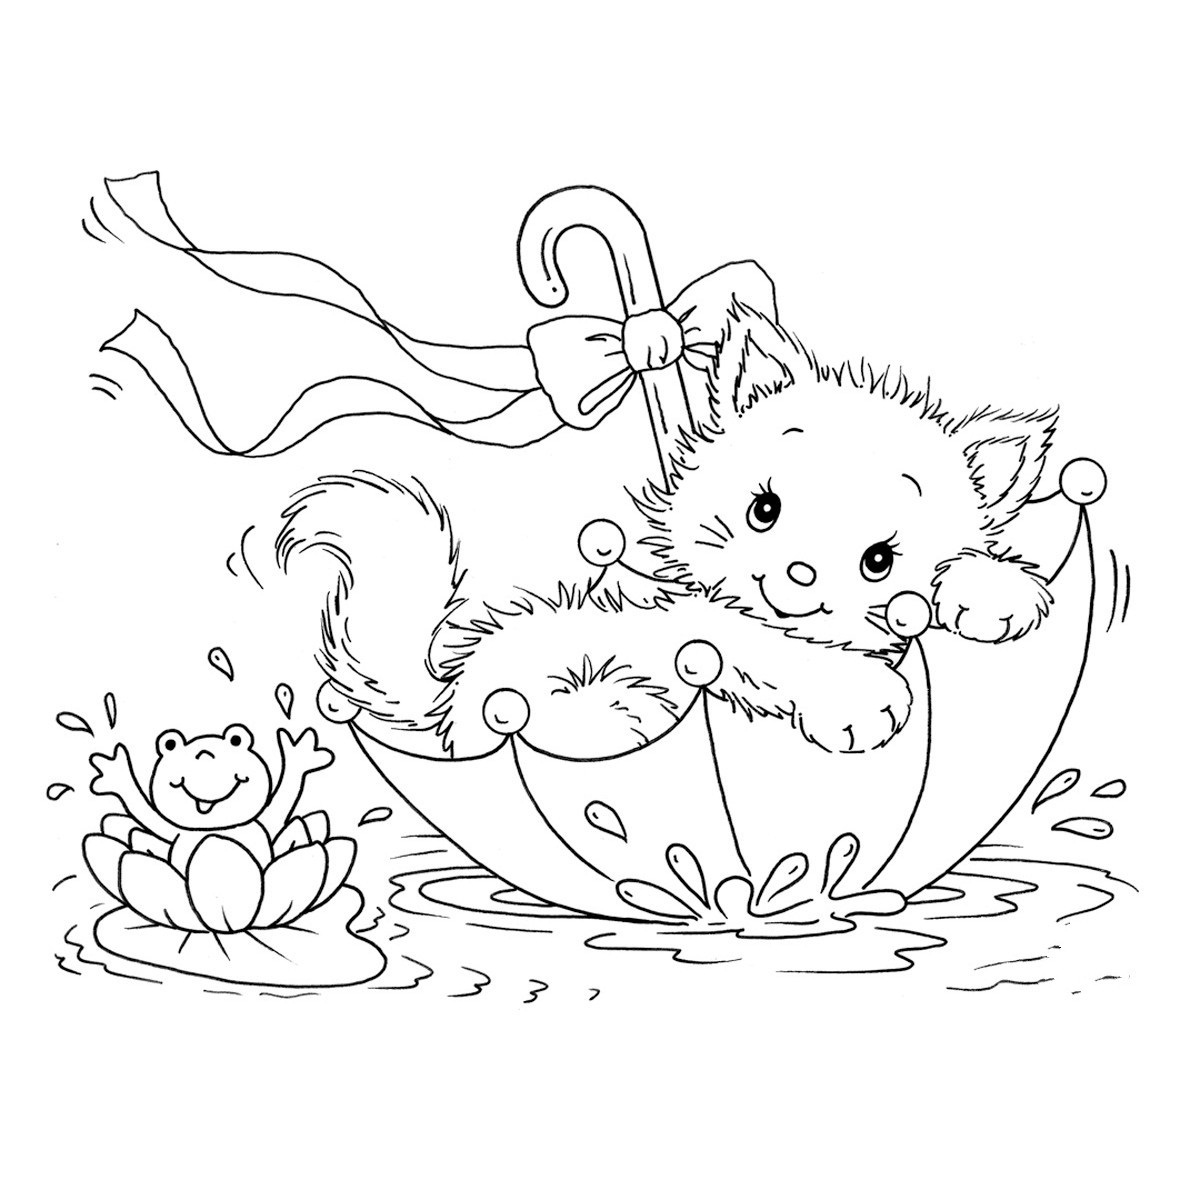 printable cats cute cat with flowers coloring page free printable cats printable